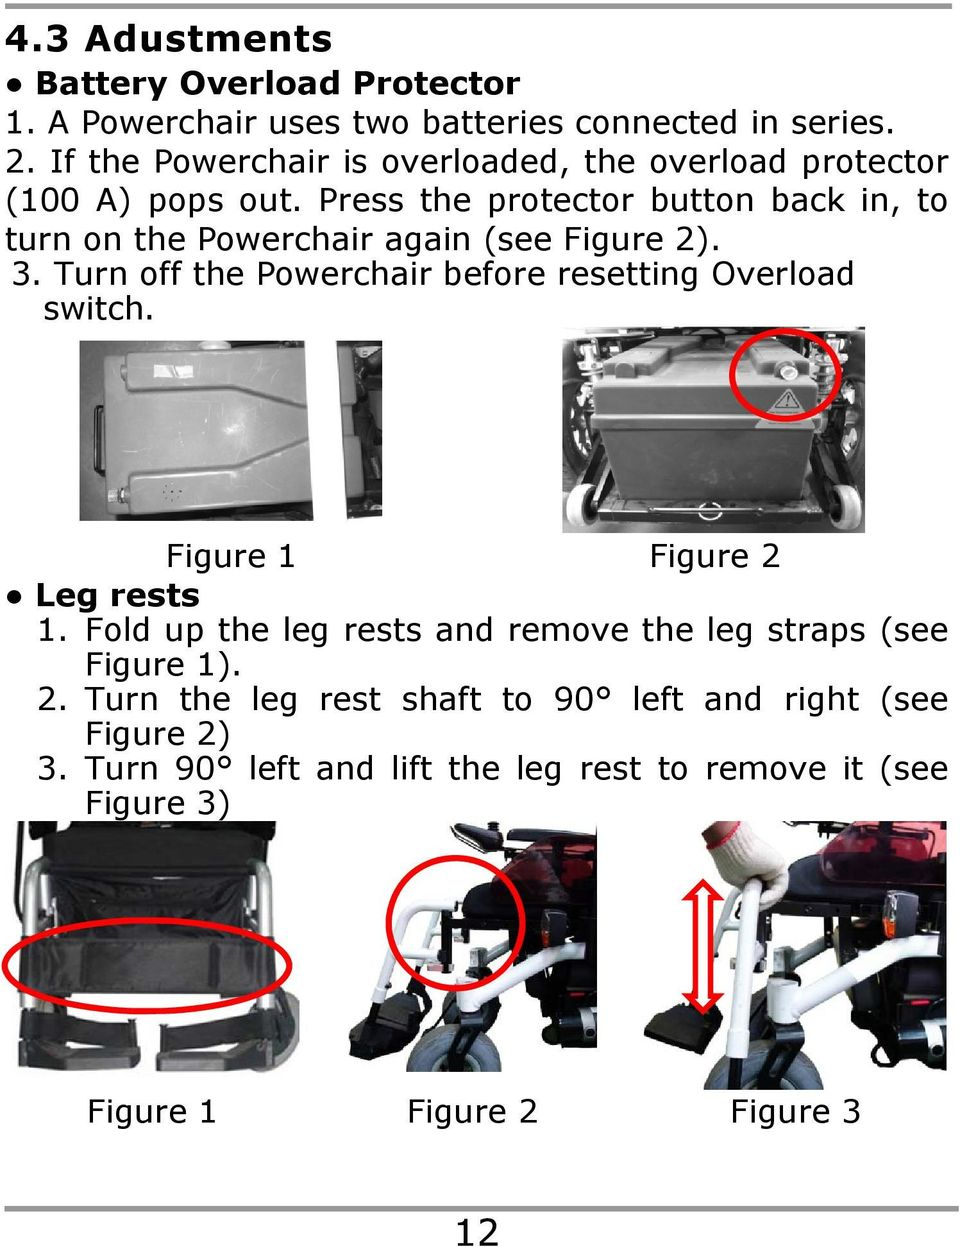 Press the protector button back in, to turn on the Powerchair again (see Figure 2). 3. Turn off the Powerchair before resetting Overload switch.